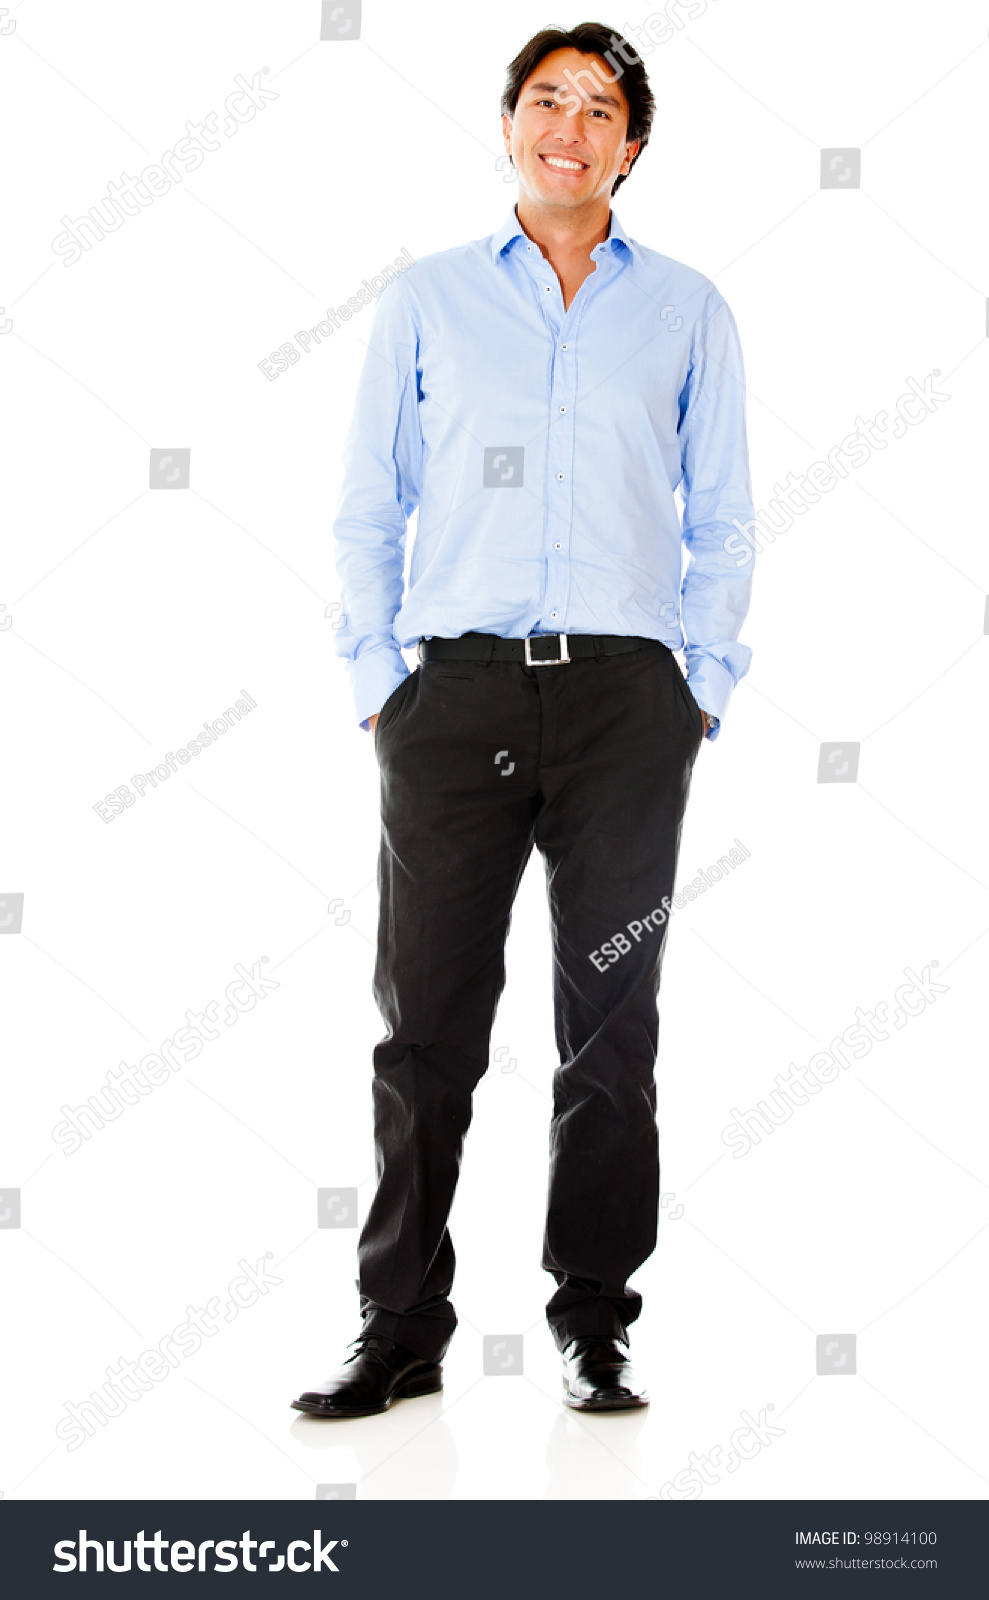 stock-photo-casual-business-man-isolated-over-a-white-background-98914100.jpg